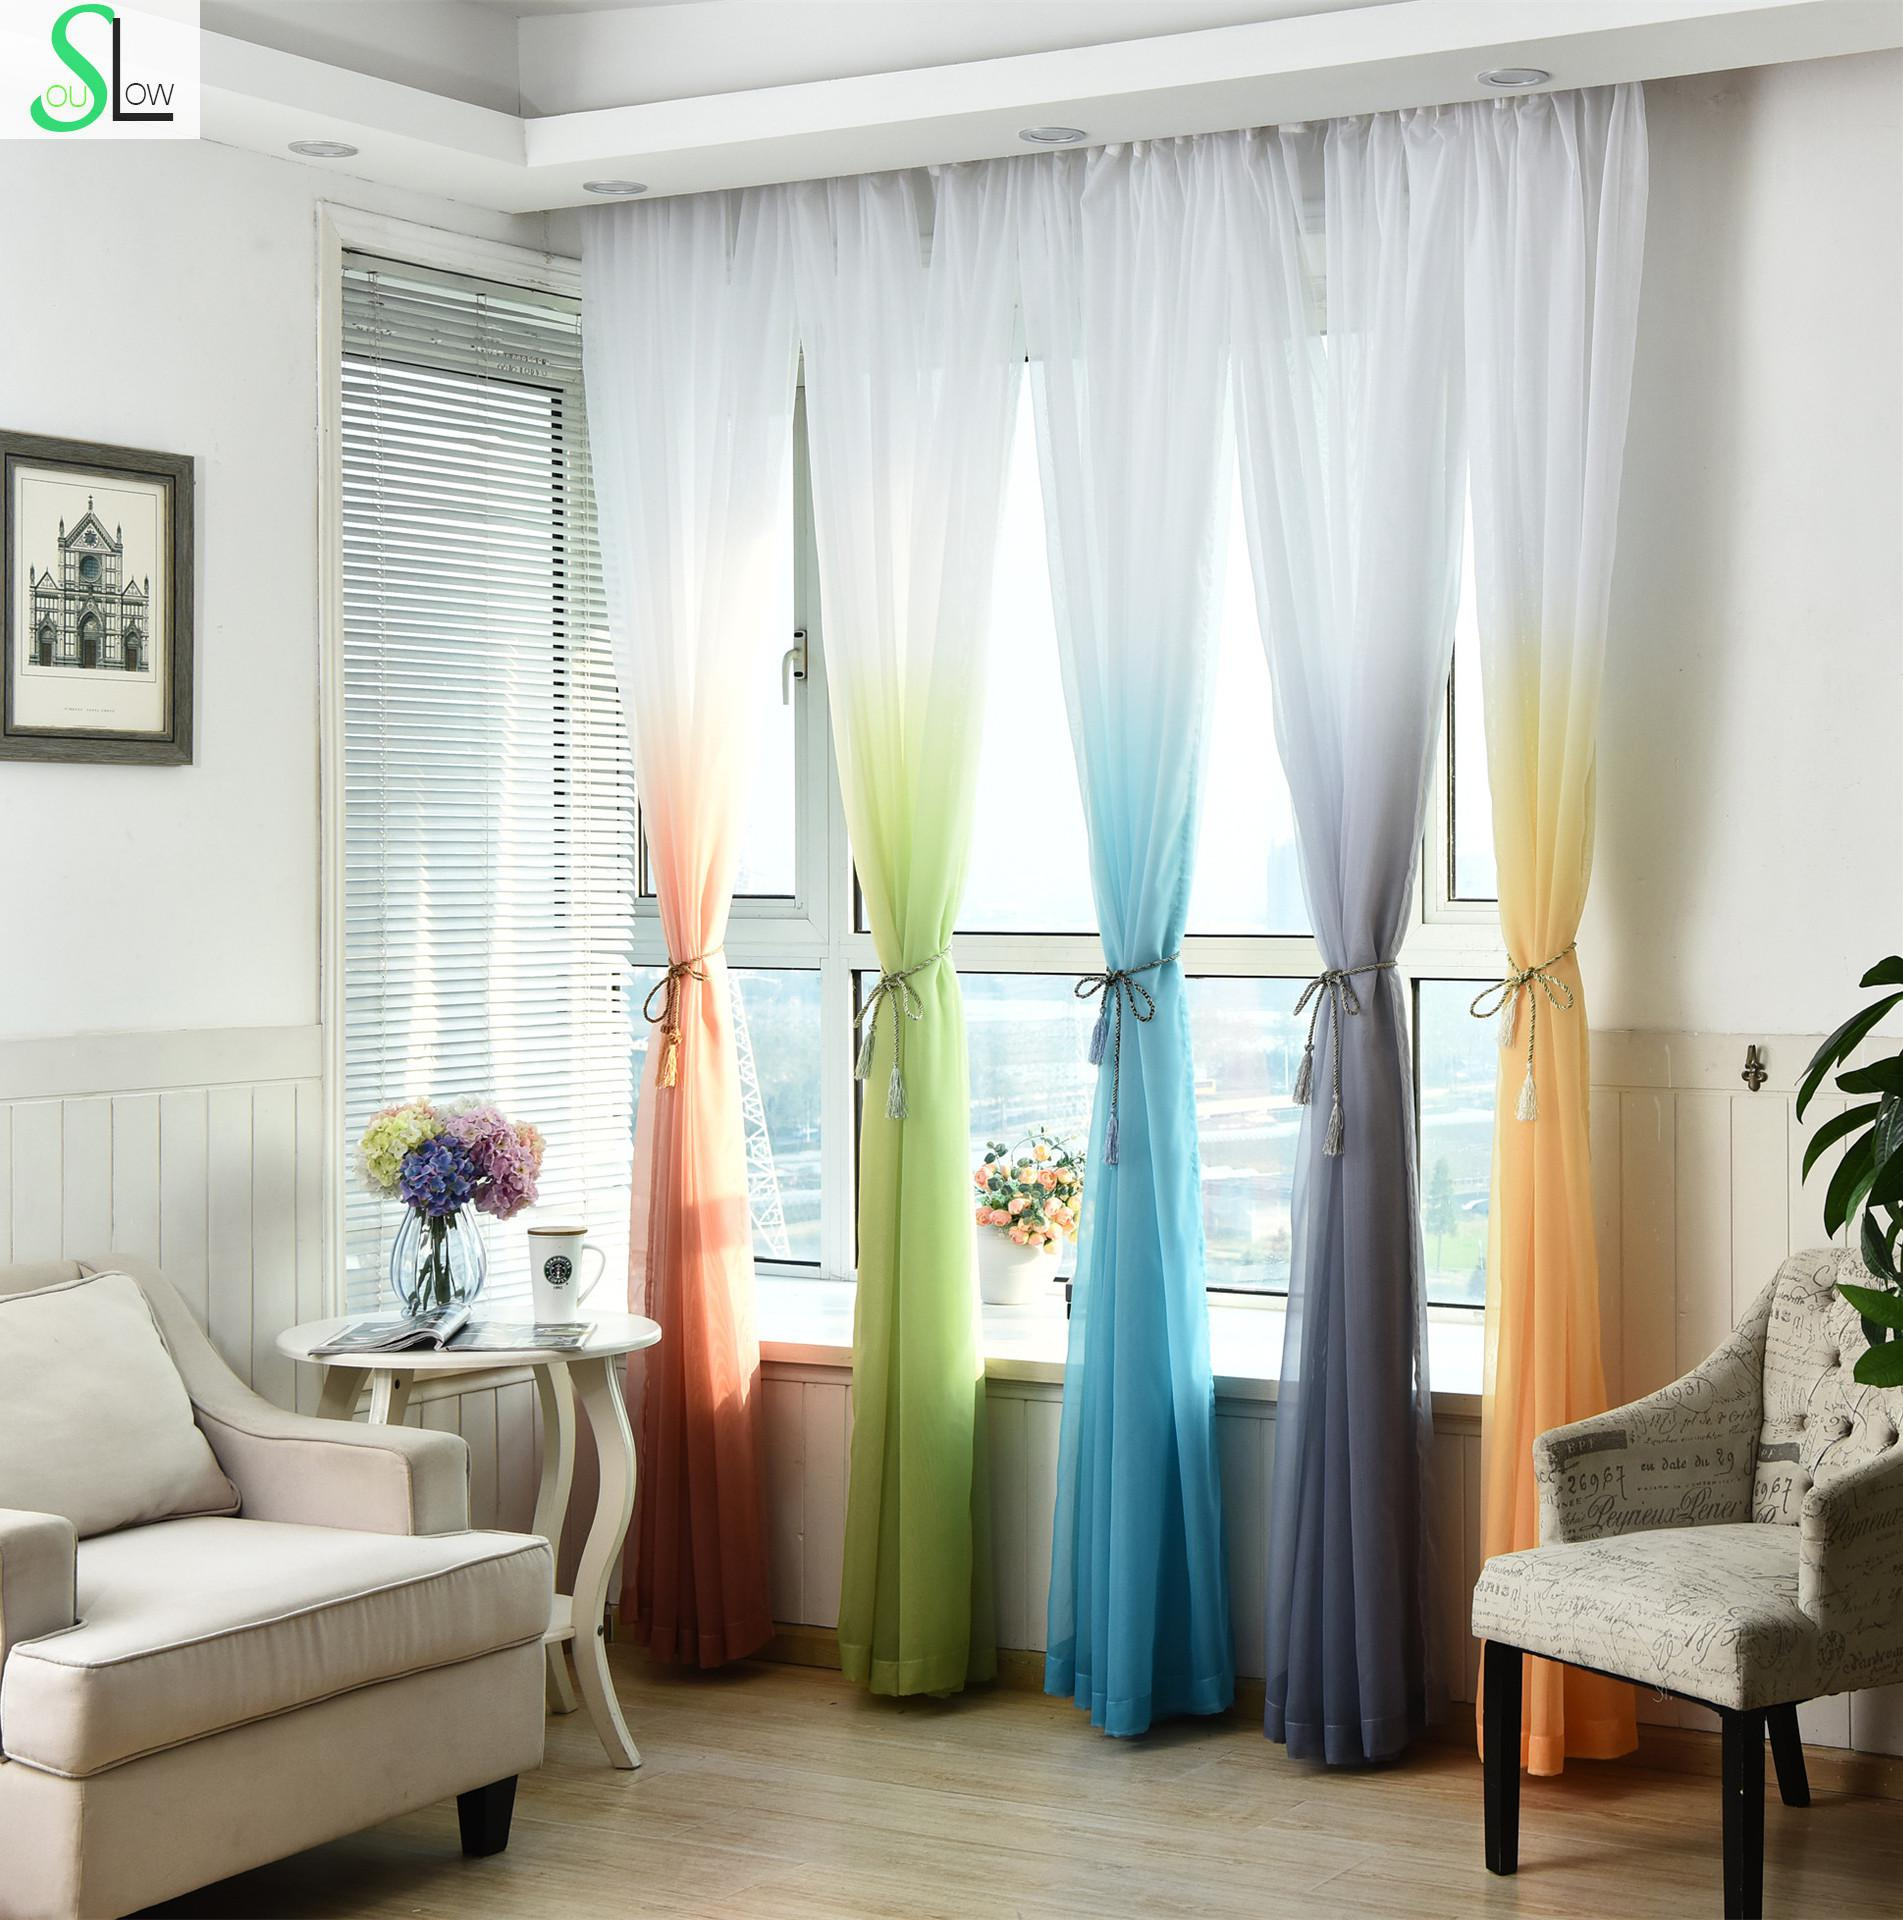 US $13.25 47% OFF|Slow Soul Coffee Powder Light Green Blue Purple Orange  Wedding Curtain Solid Tulle Curtains For Living Room Bedroom Decoration-in  ...